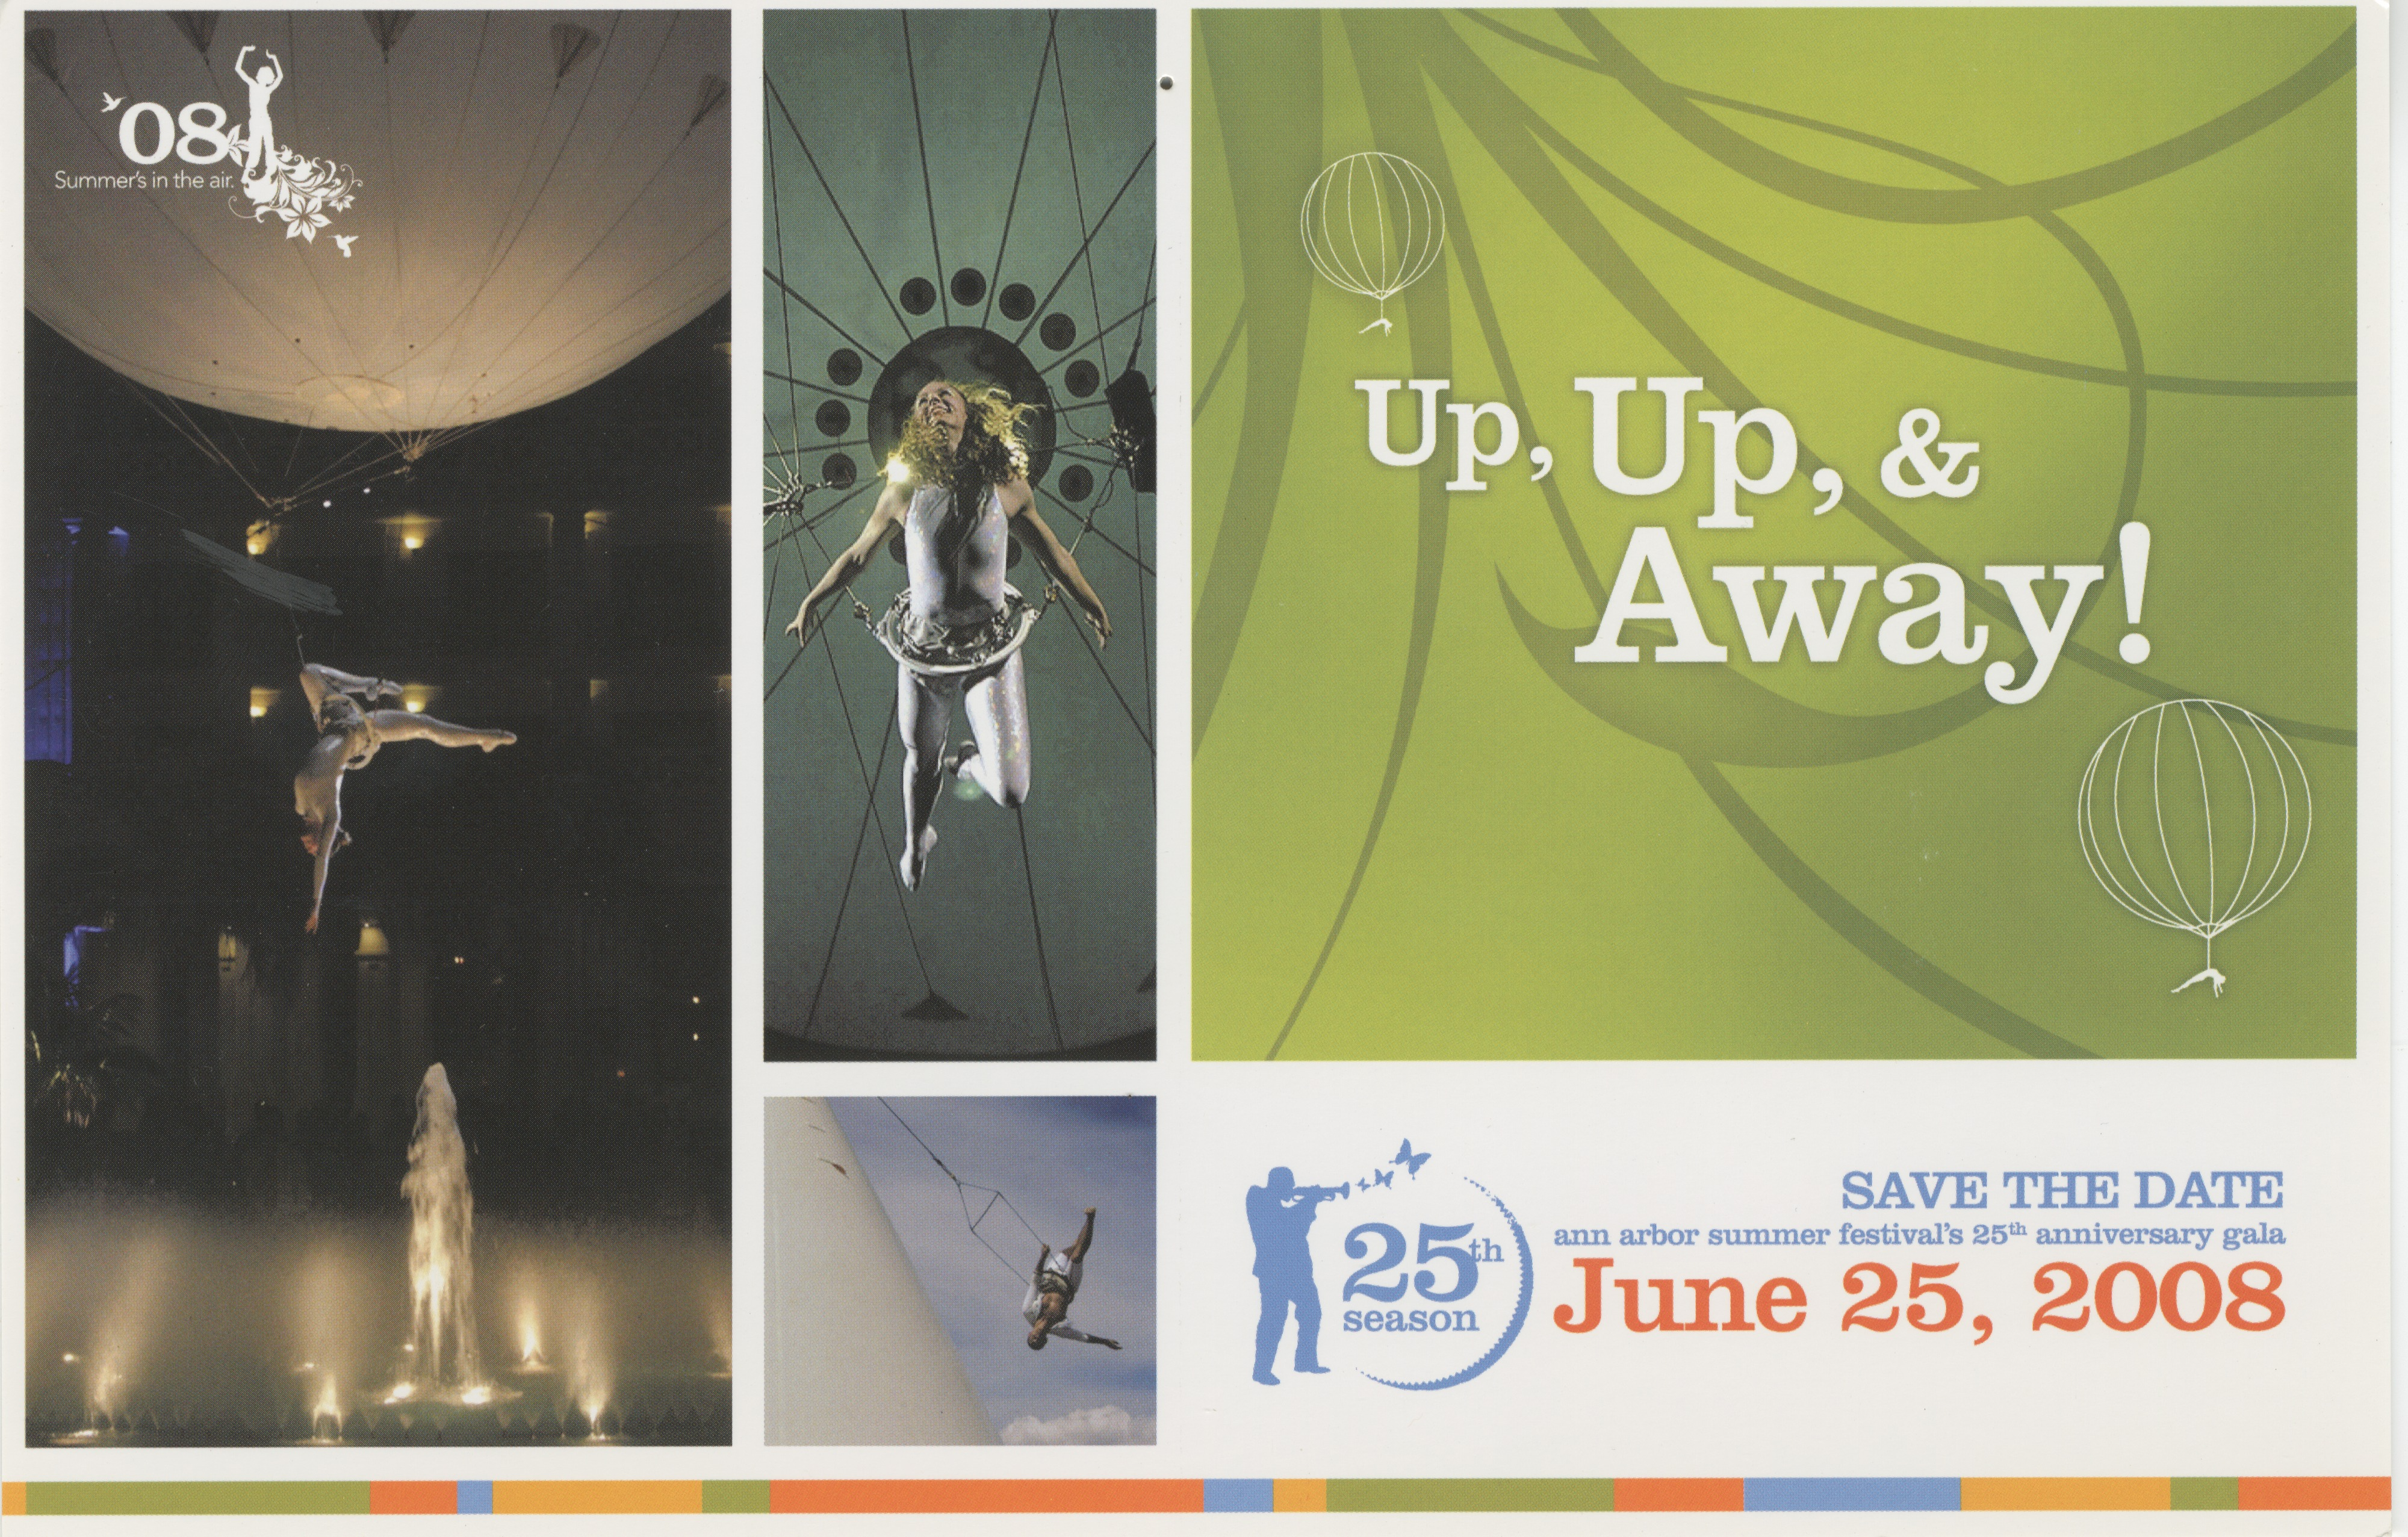 2008 Ann Arbor Summer Festival Postcard: Up Up & Away image